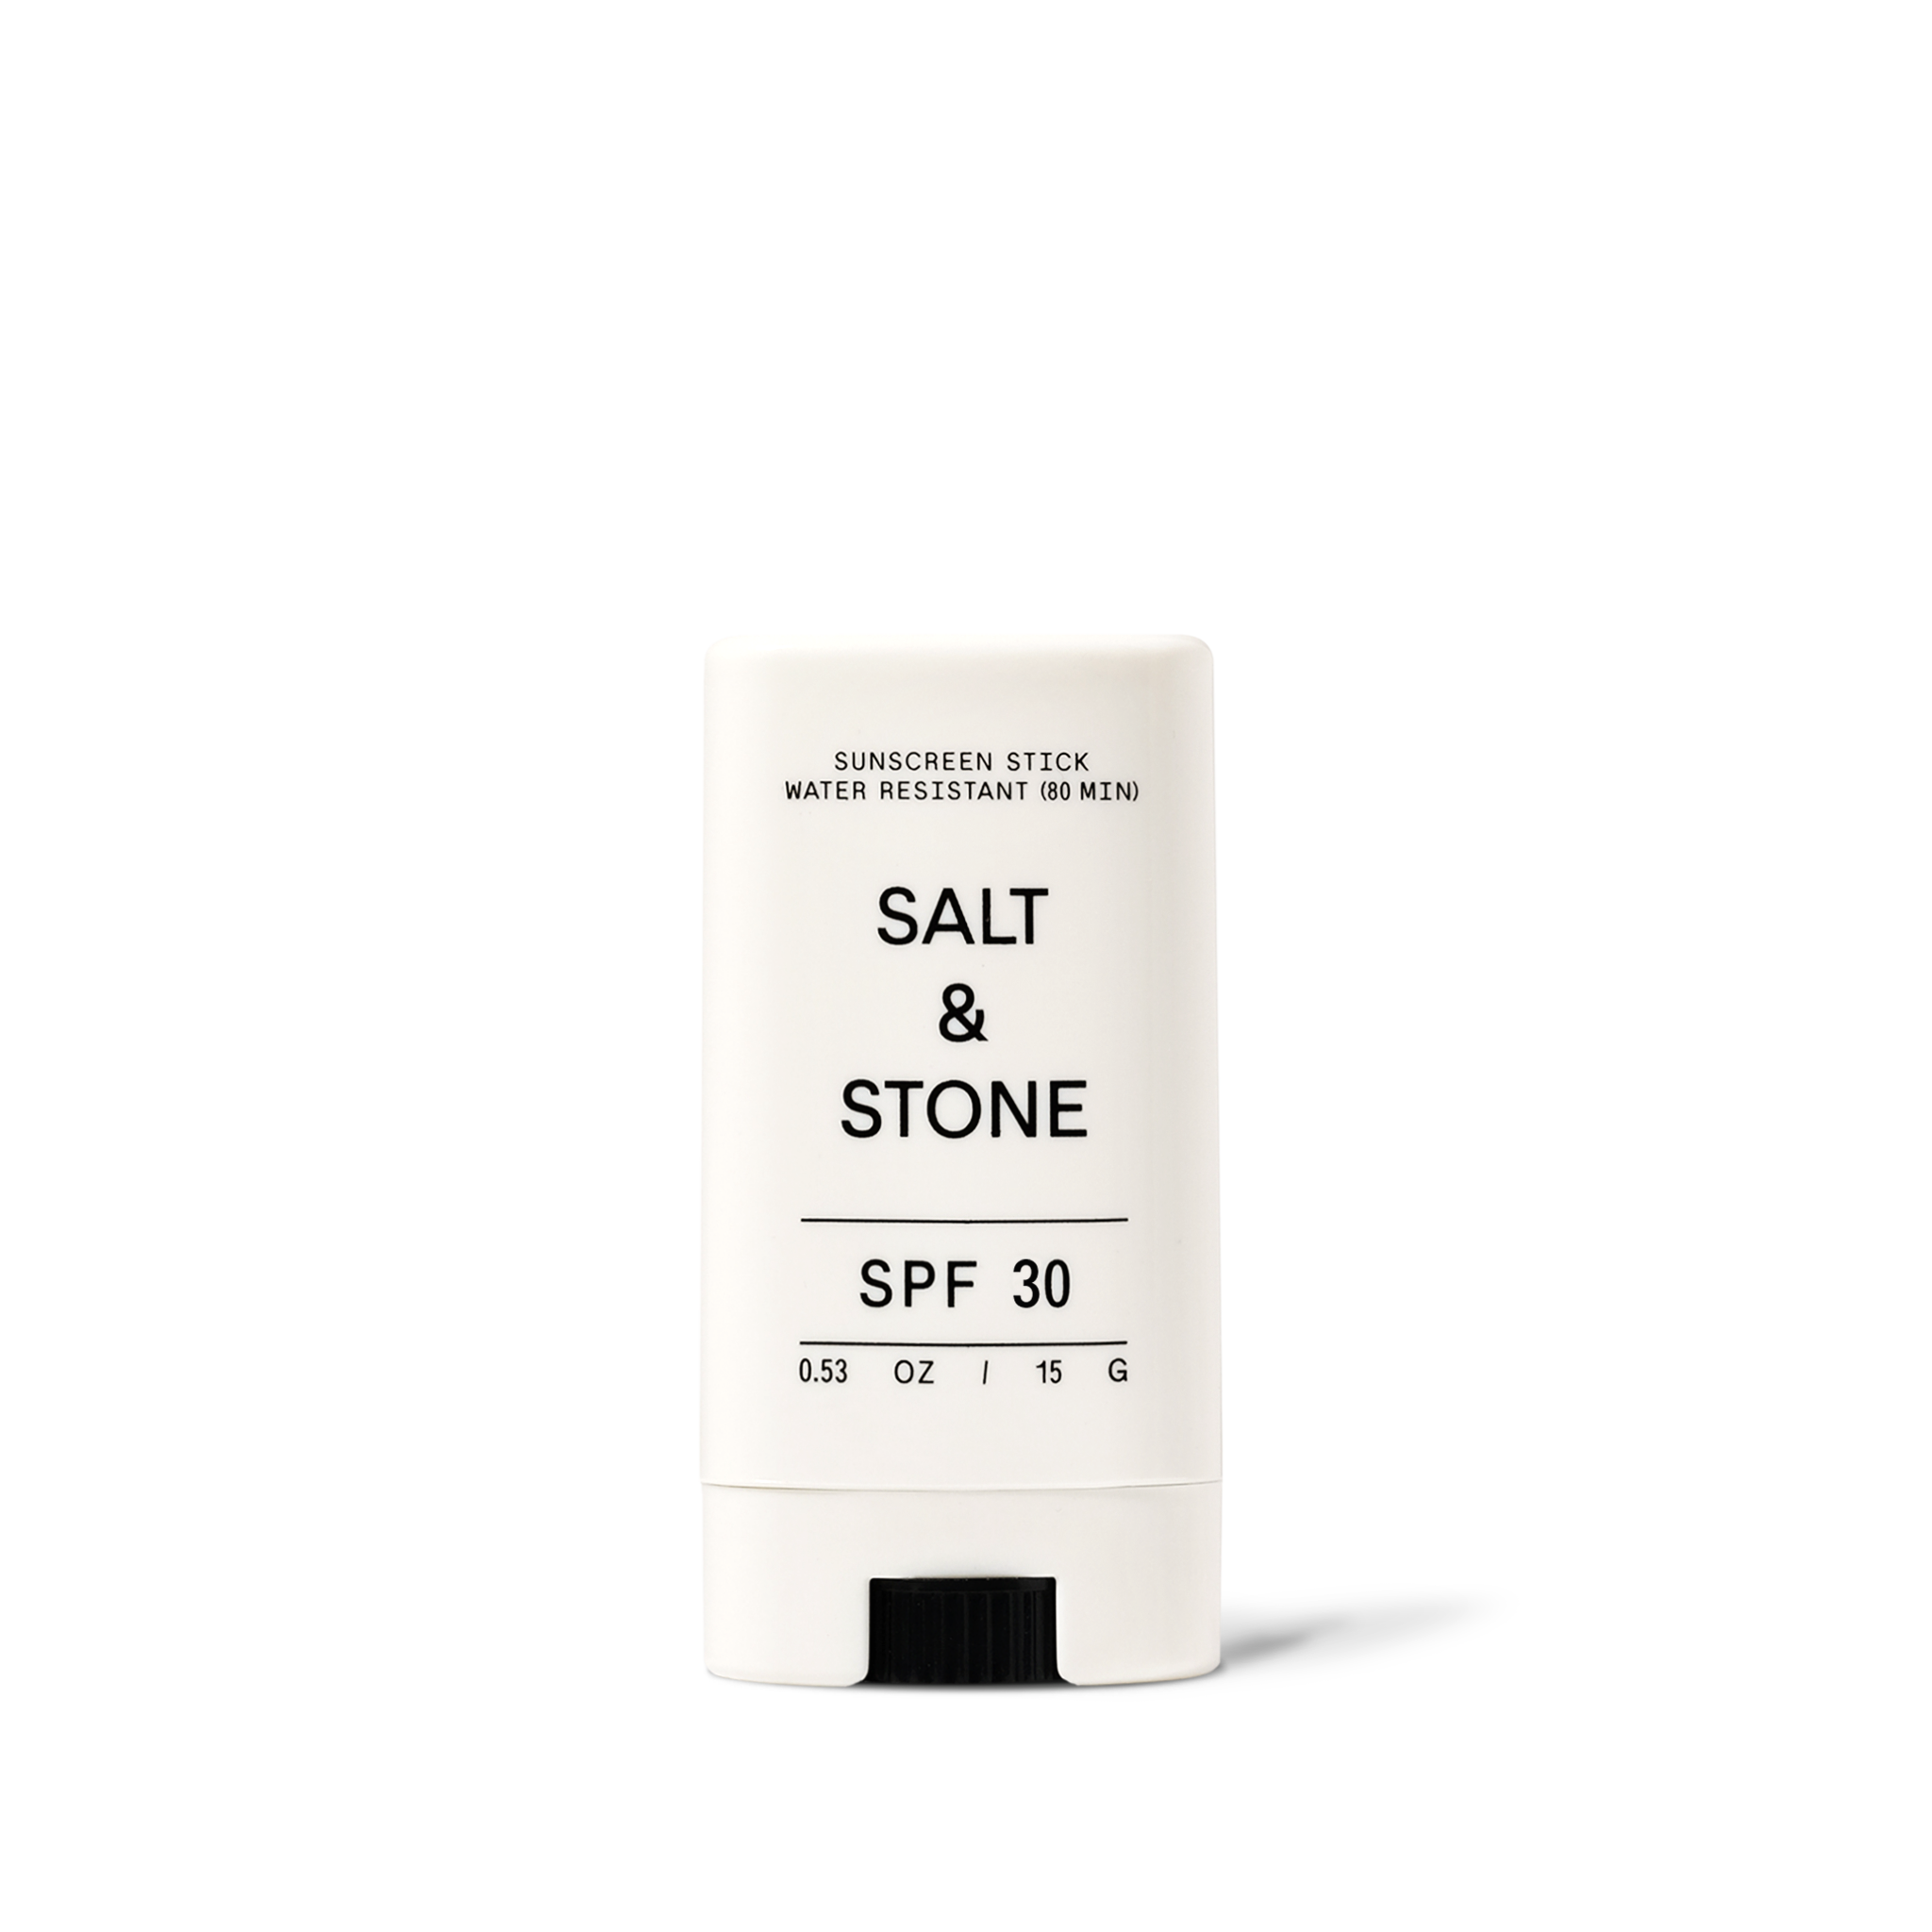 Salt-&-Stone-SPF-30-Sunscreen-Stick